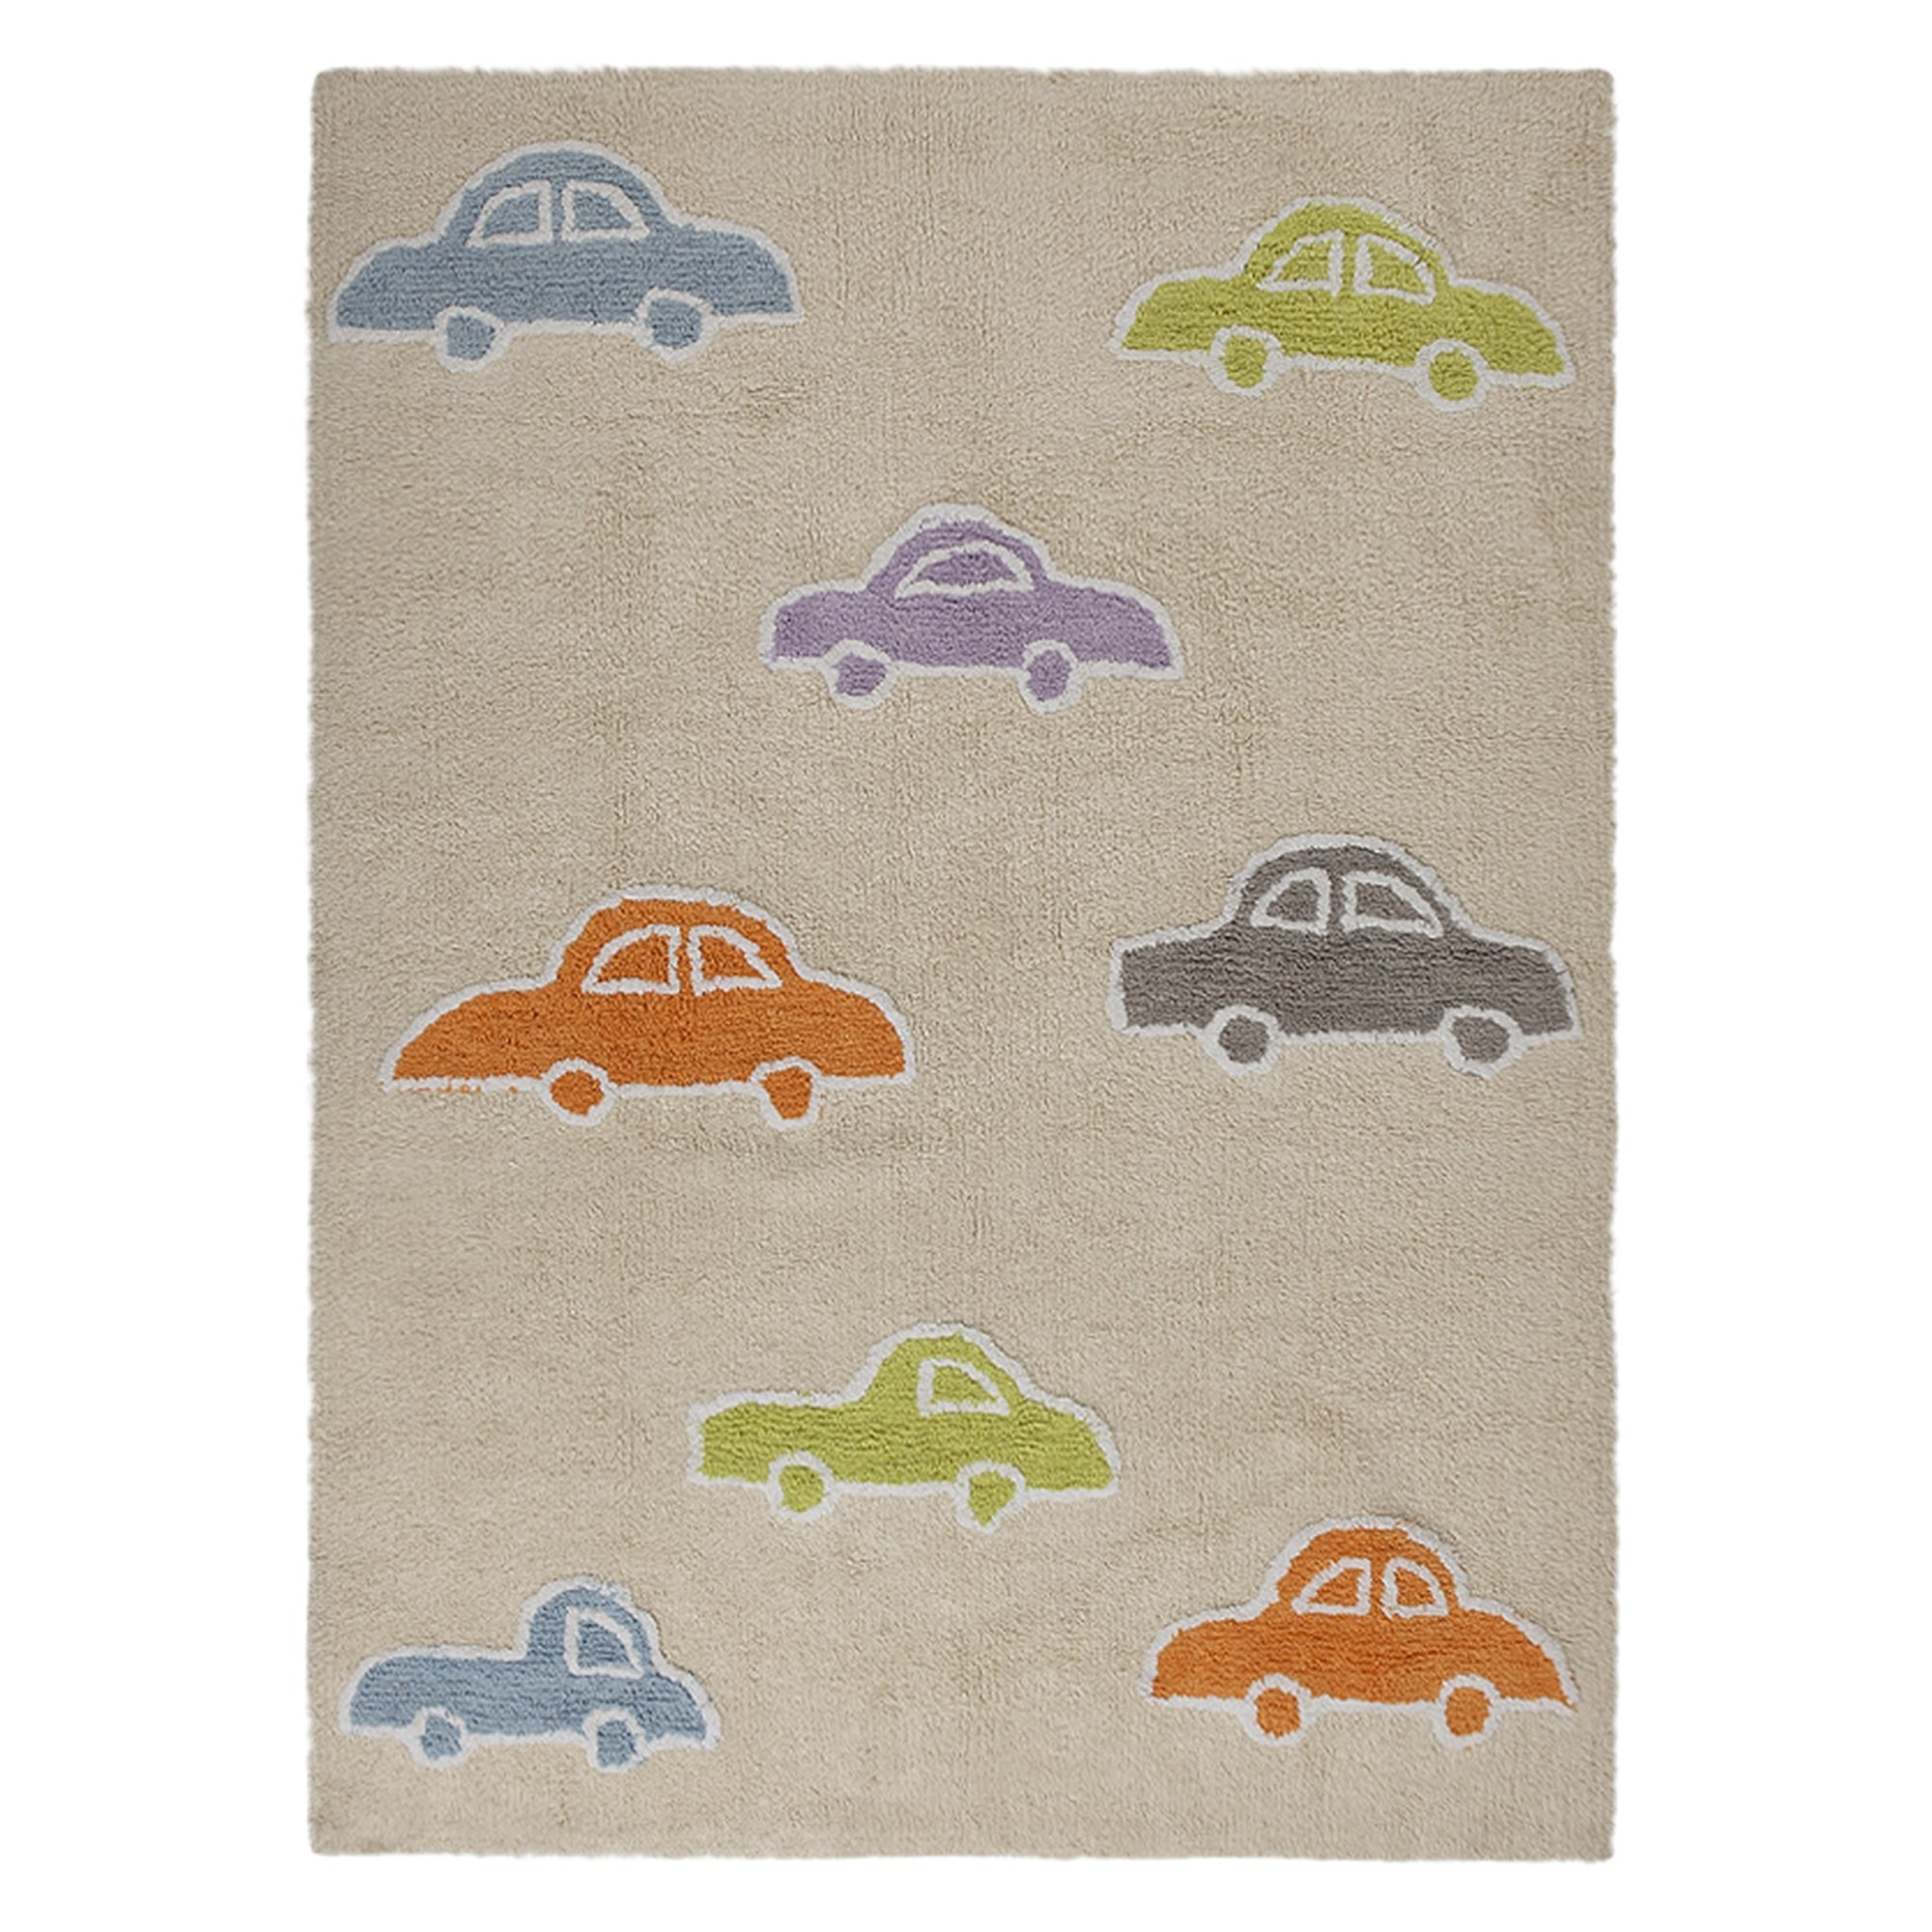 Lorena Canals Cars Machine Washable Kids Rug, 4 x 5 Feet, Handmade From 100% Natural Cotton and Non-Toxic Dyes, Perfect for Nursery, Baby, Playroom, or Childrens Rooms, Works for Outdoor or Beach